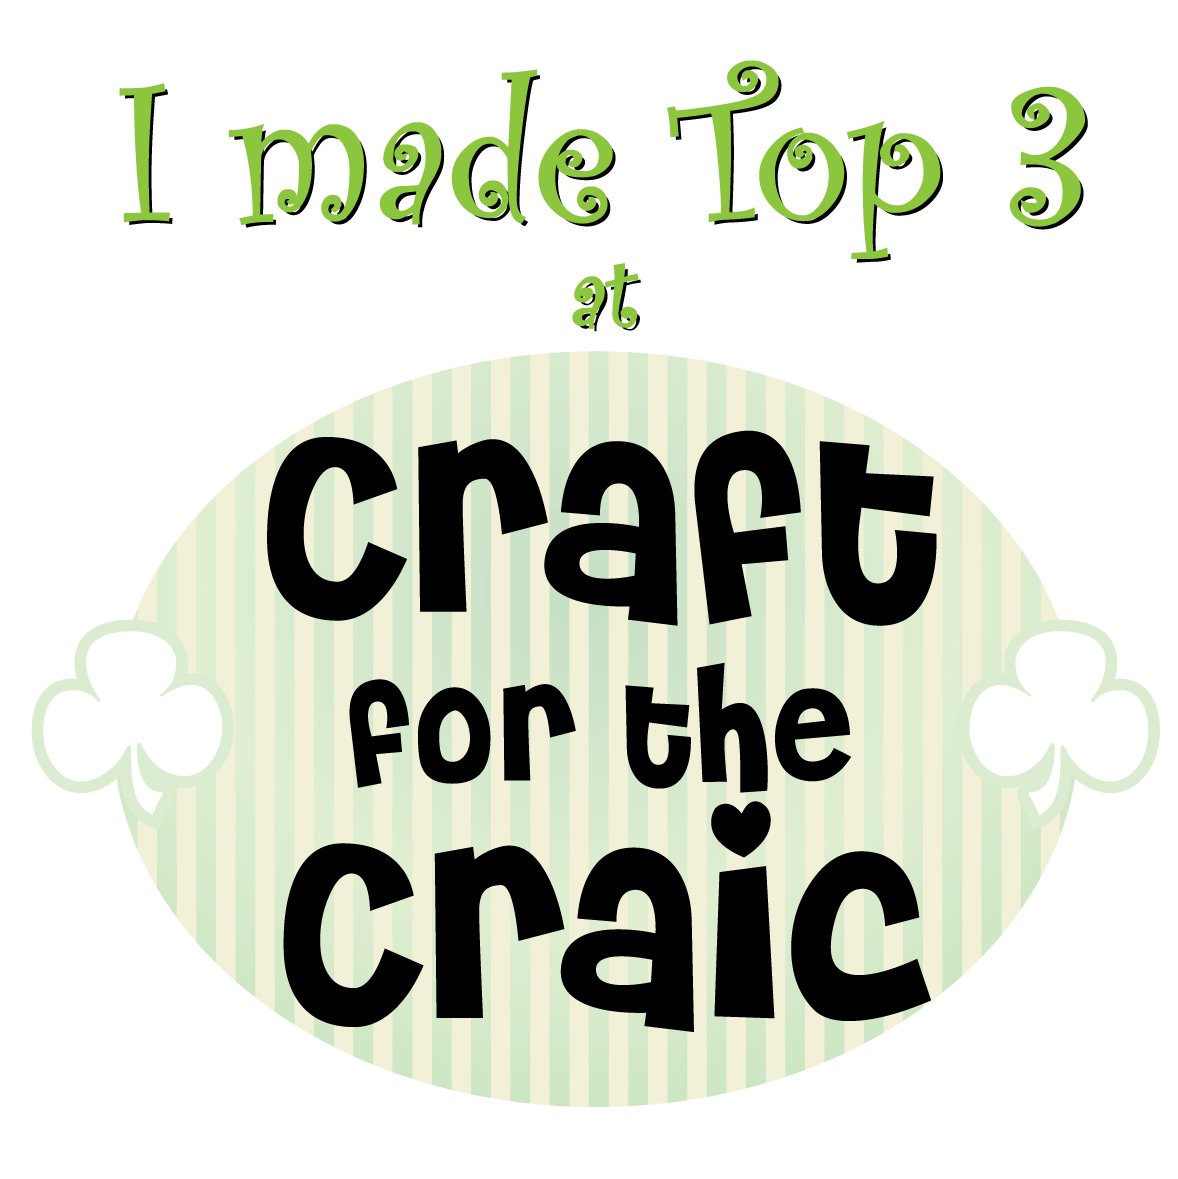 Craft For The Craic Top 3